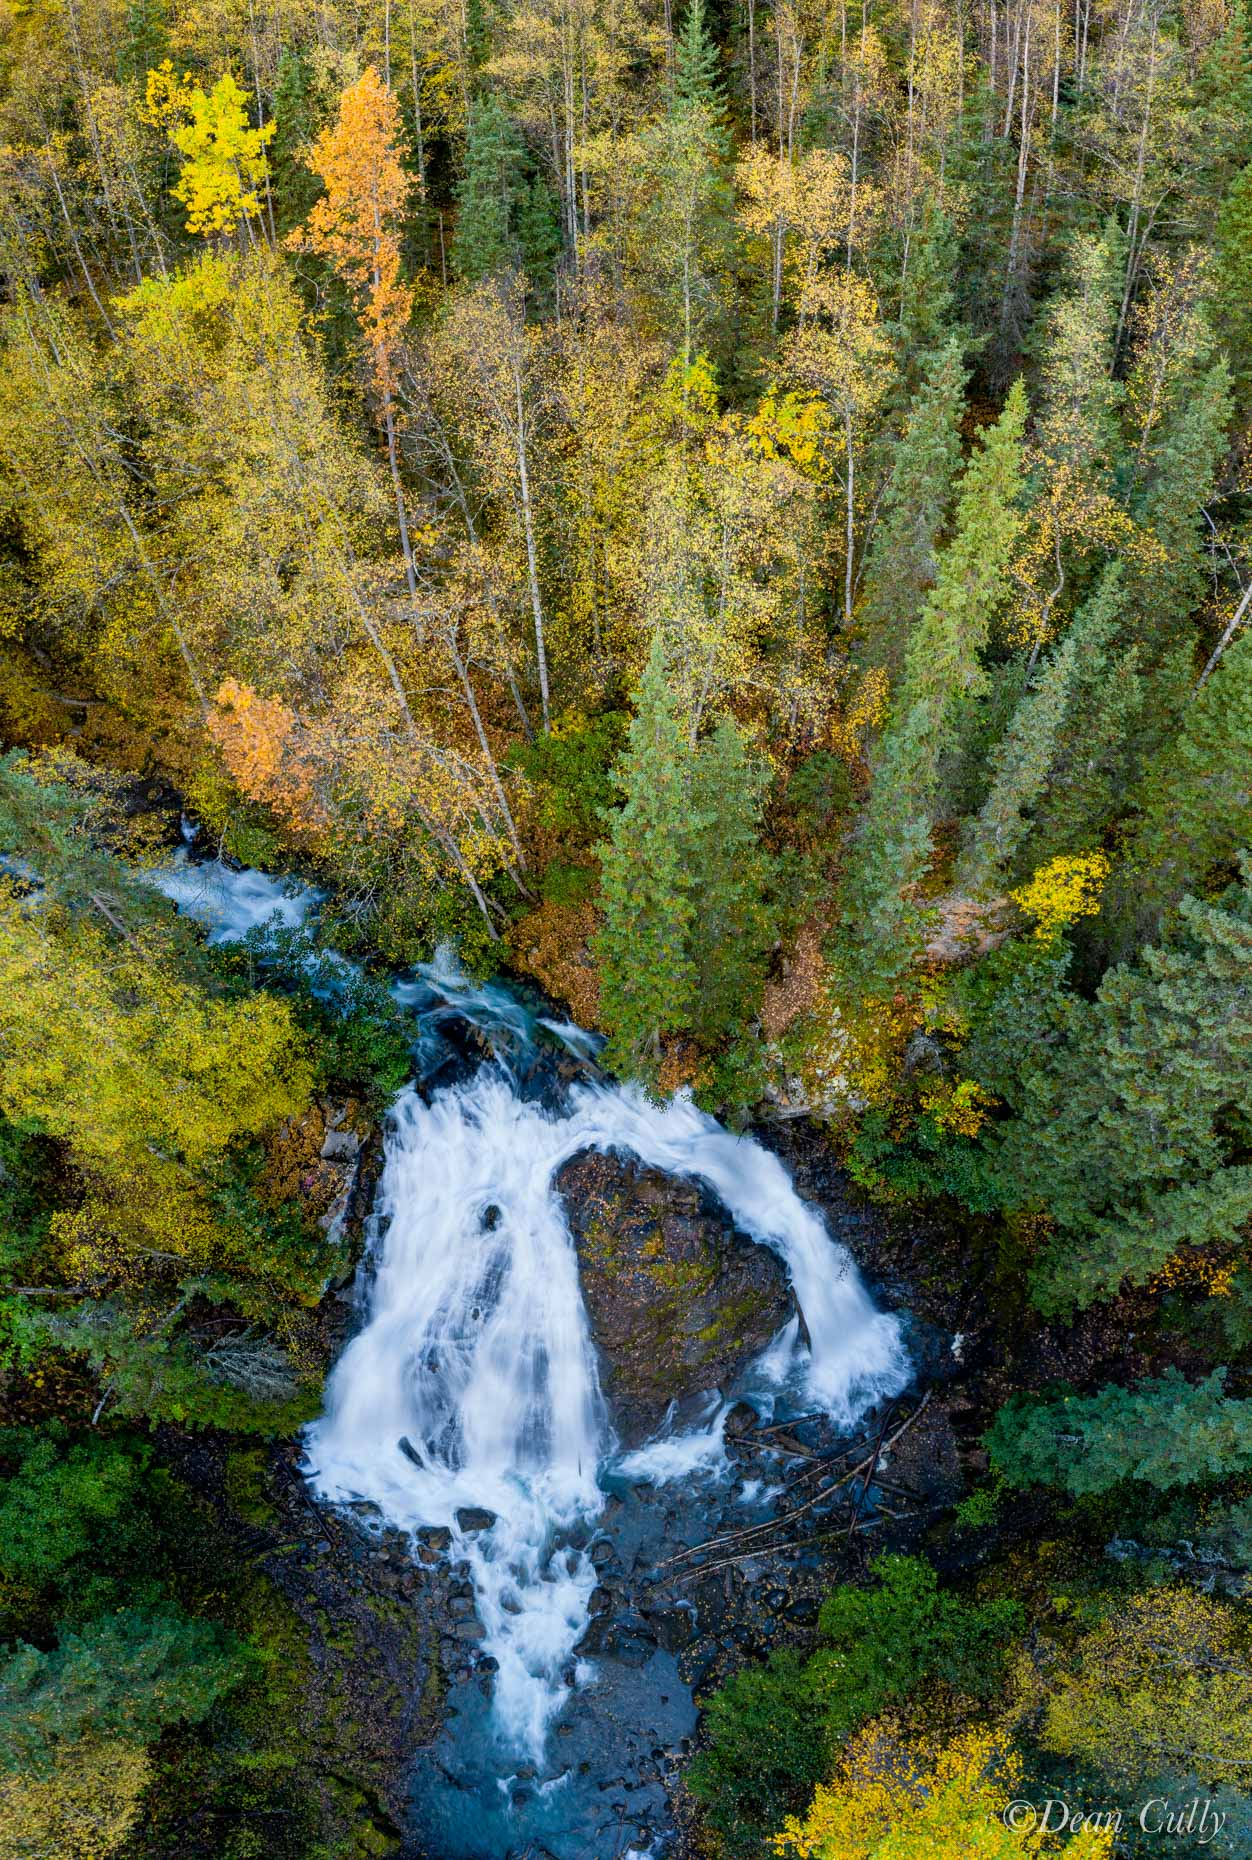 south_fork_eagle_river_falls_0730UAS